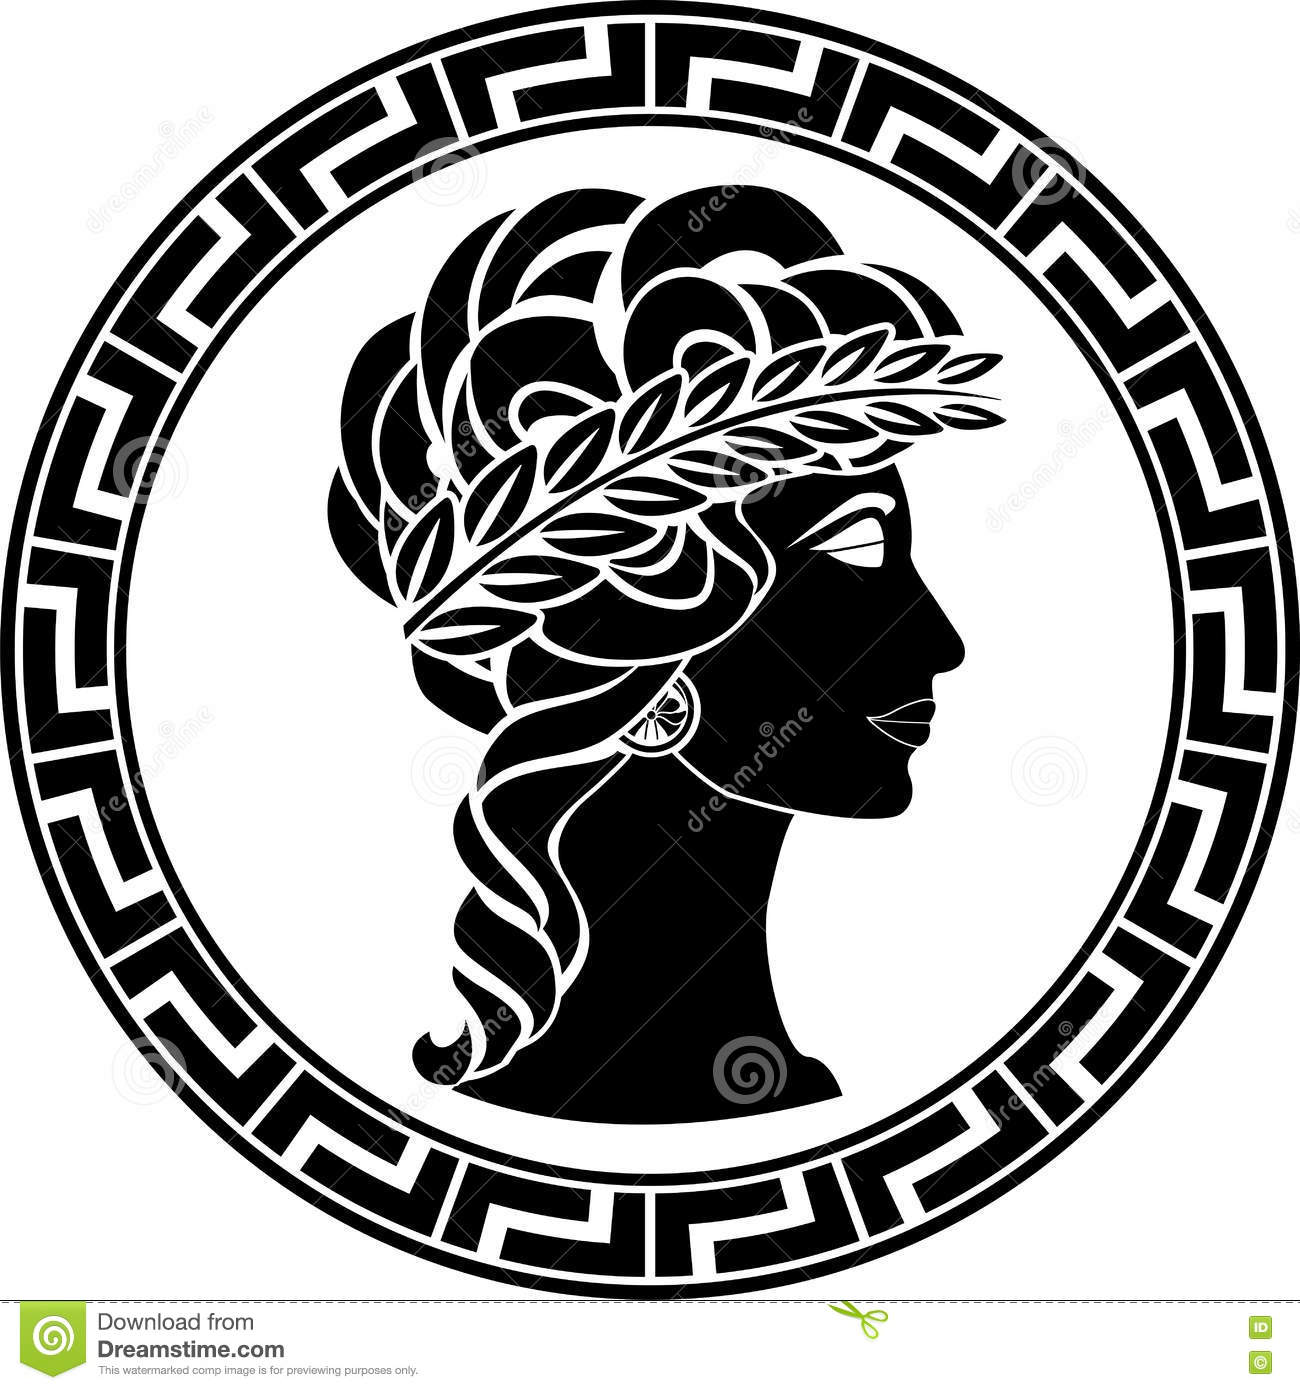 Profile Of Ancient Woman Stock Vector Illustration Of Crown 75504596